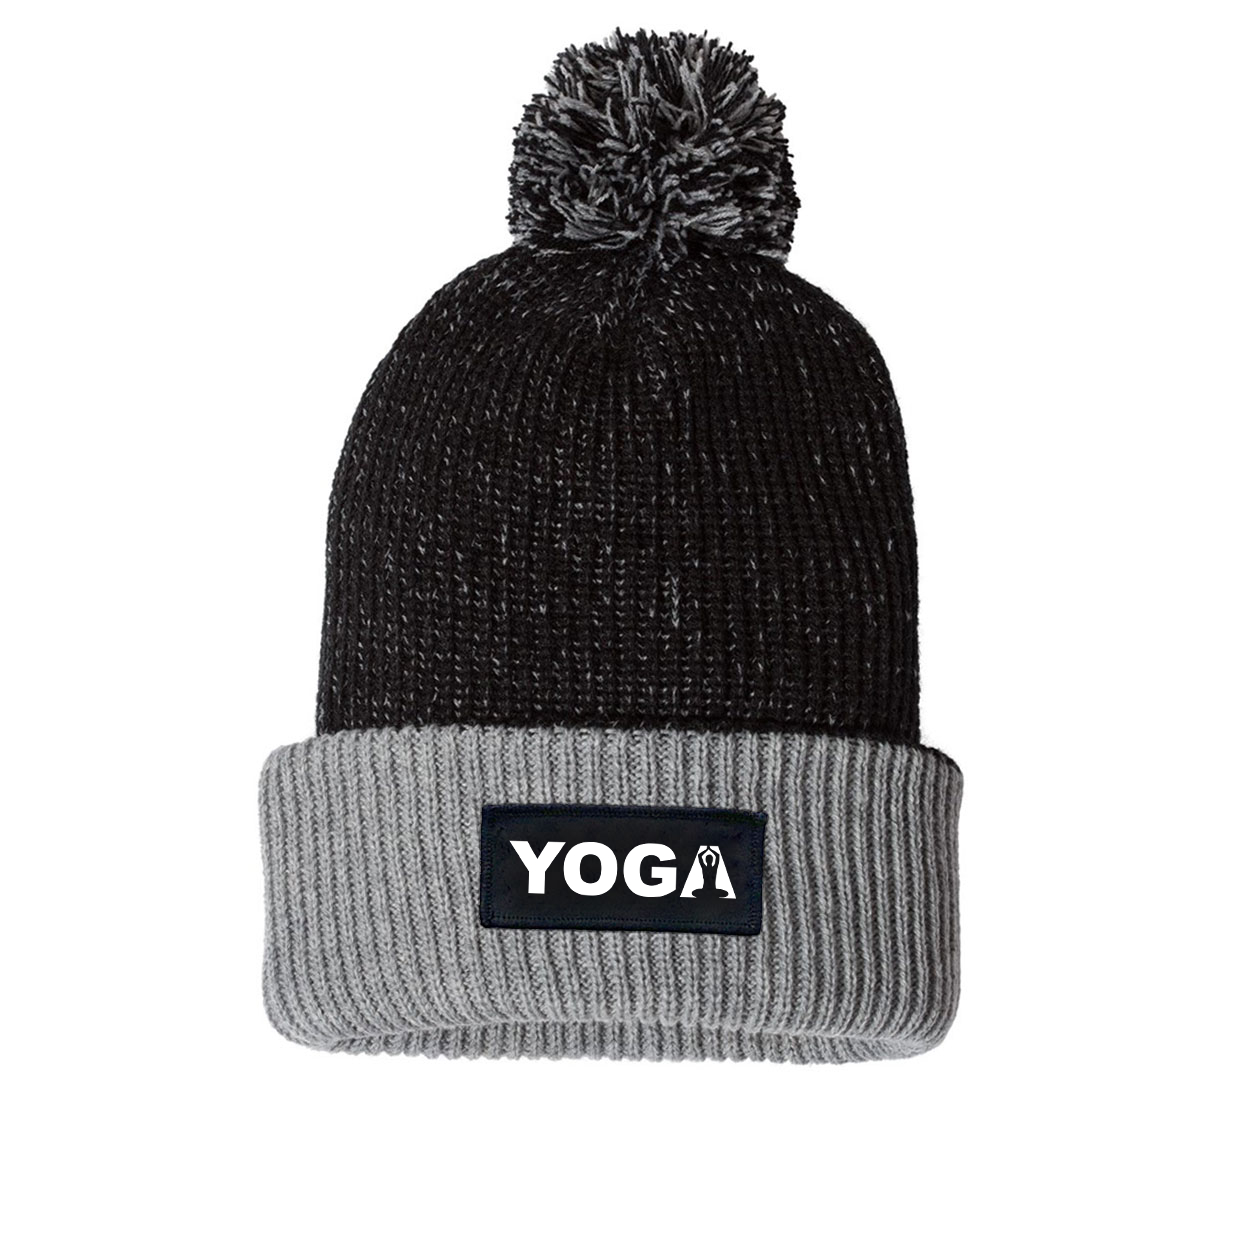 Yoga Meditation Logo Night Out Woven Patch Roll Up Pom Knit Beanie Black/Gray (White Logo)